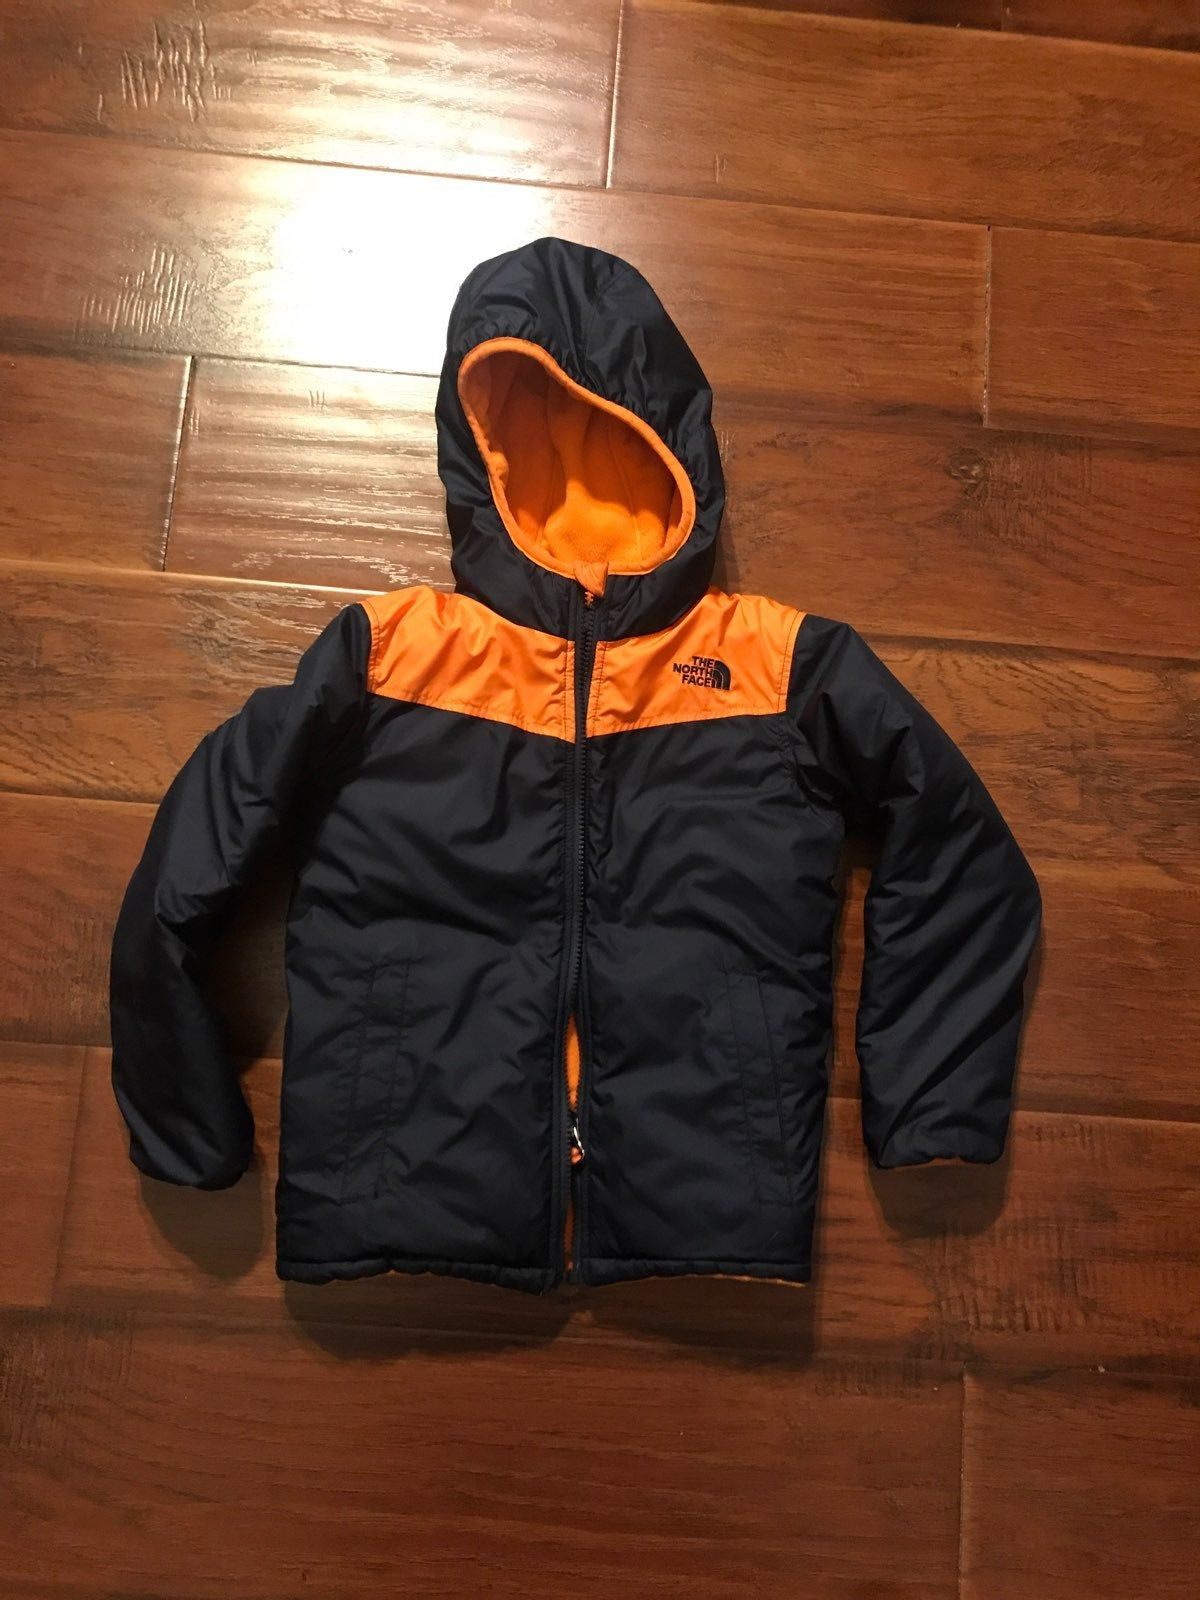 The North Face Reversible Jacket Size 6 Navy Blue Orange Color In Good Condition Comes From Pet And Smoke Reversible Jackets North Face Coat The North Face [ 1600 x 1200 Pixel ]